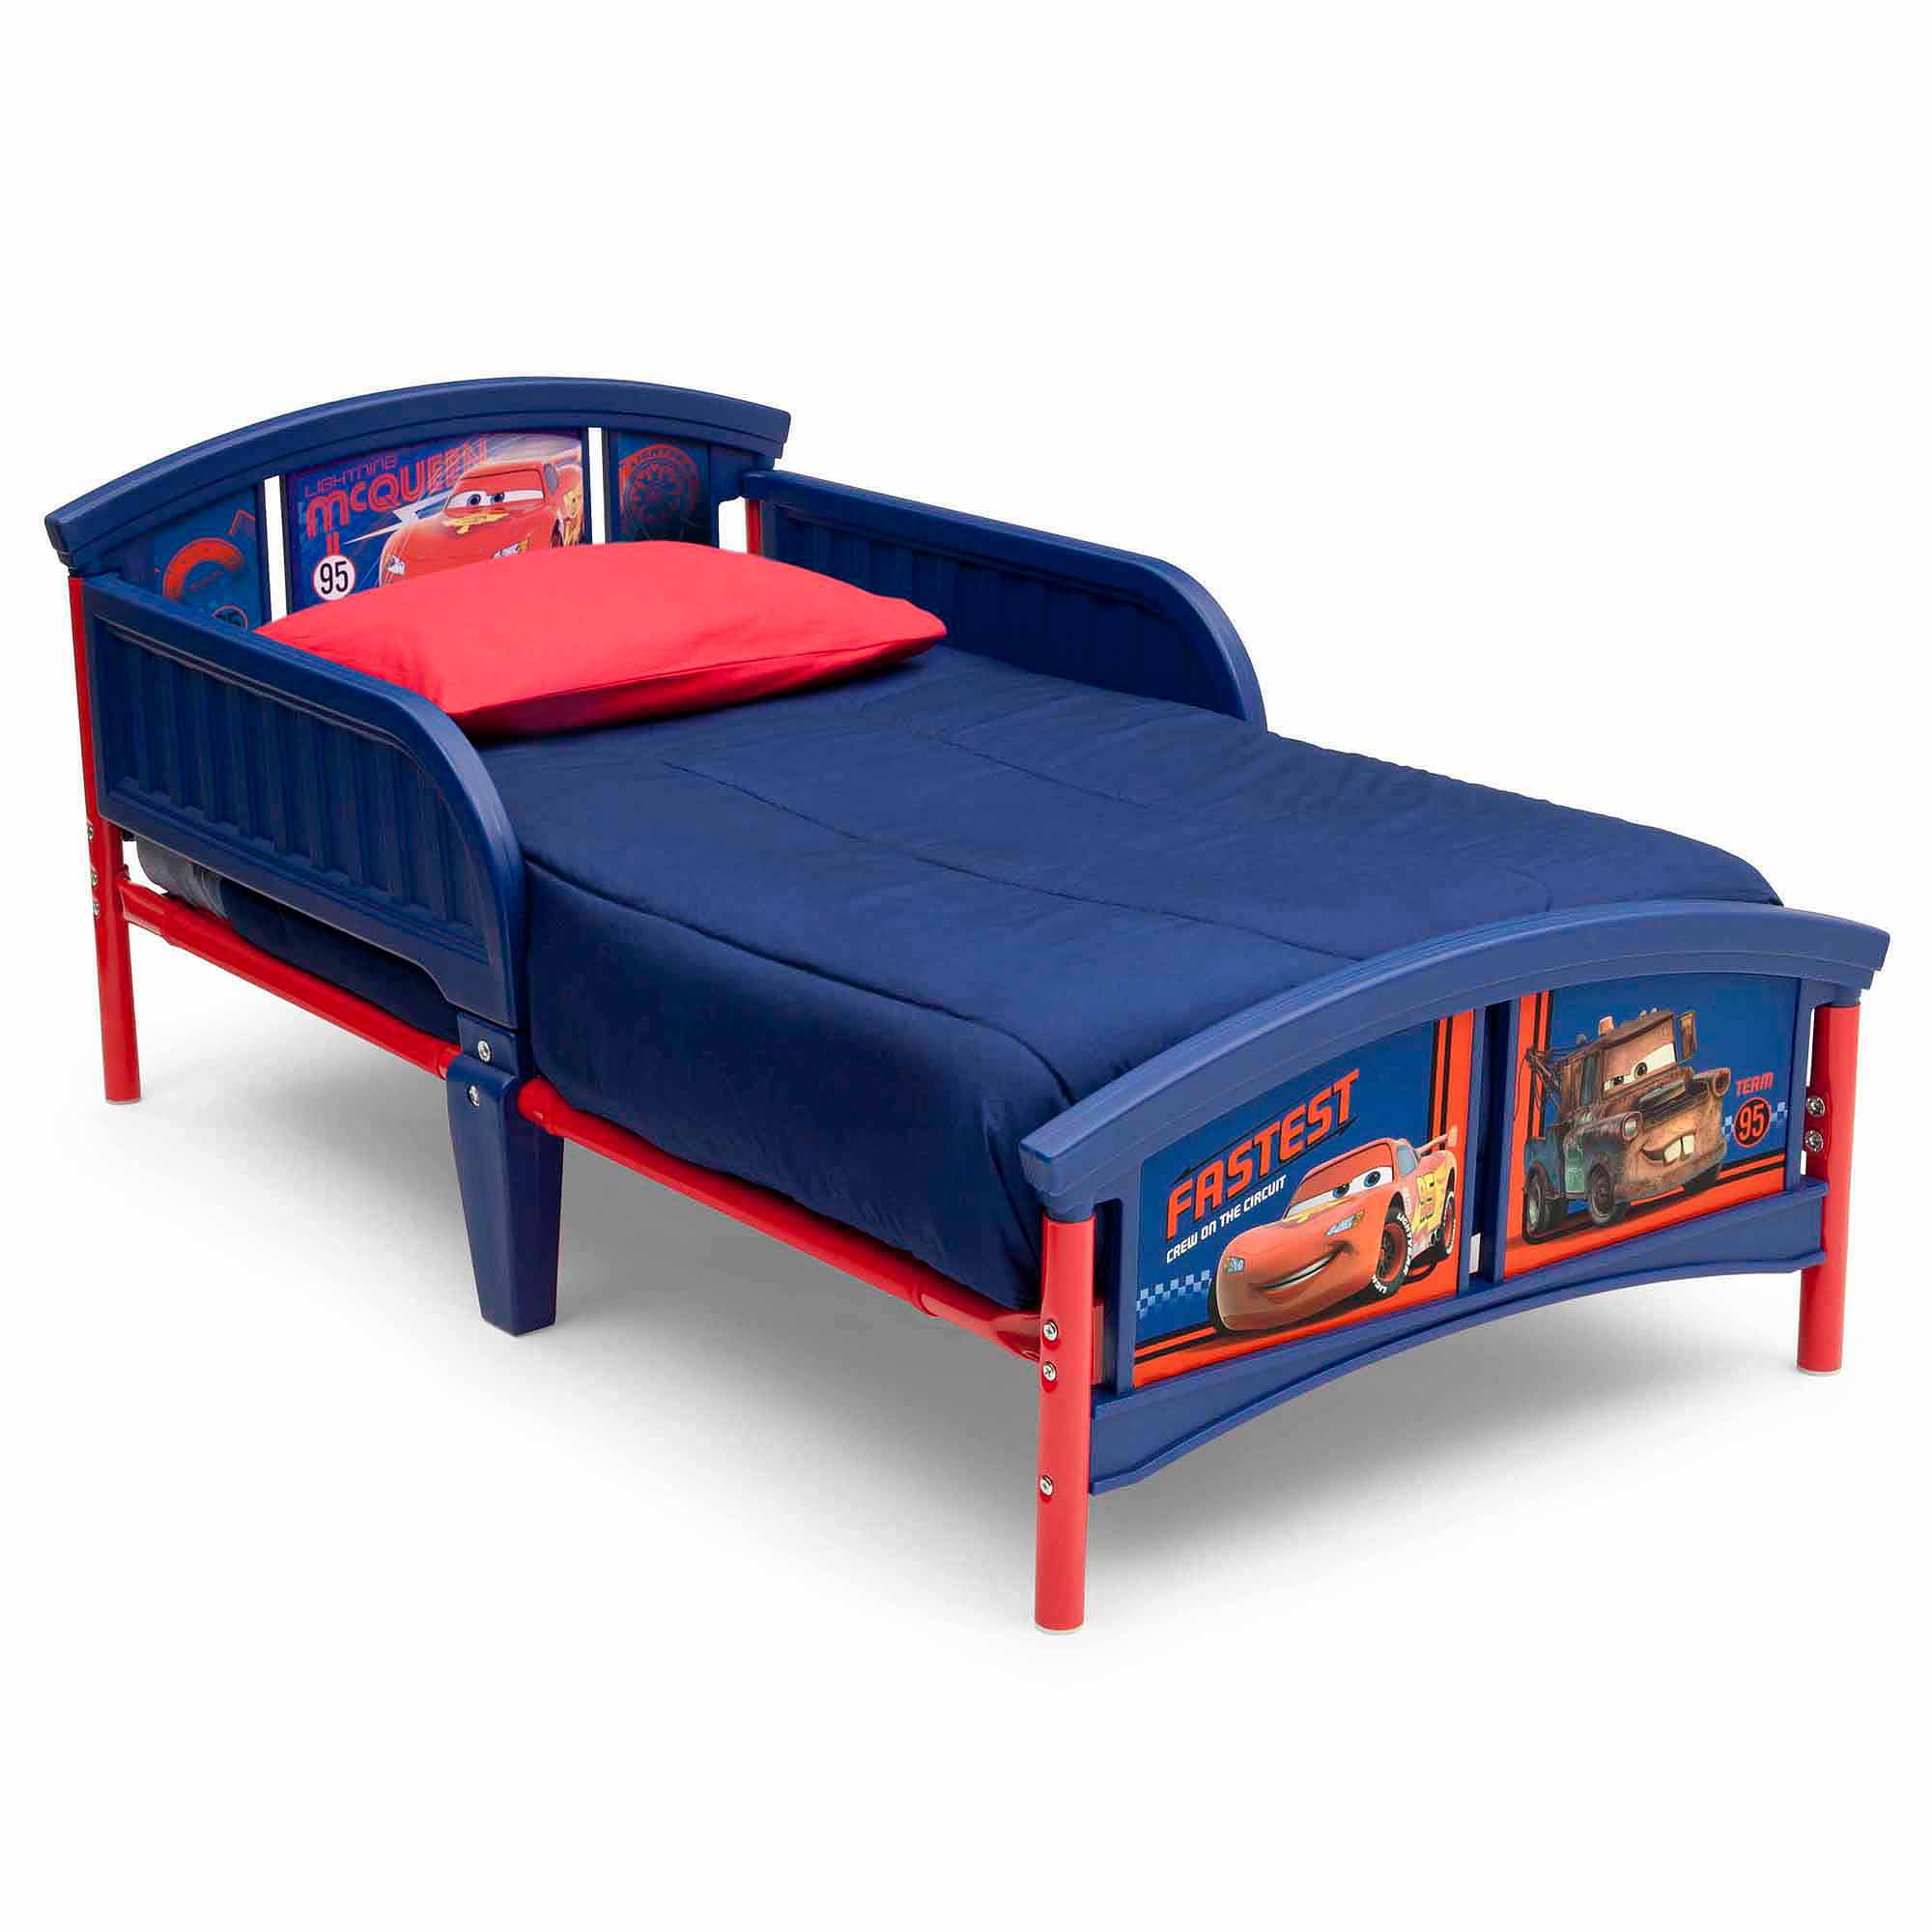 Cheap Toddler Beds Baby Relax Sleigh Toddler Bed Multiple Finishes With Bed Rails